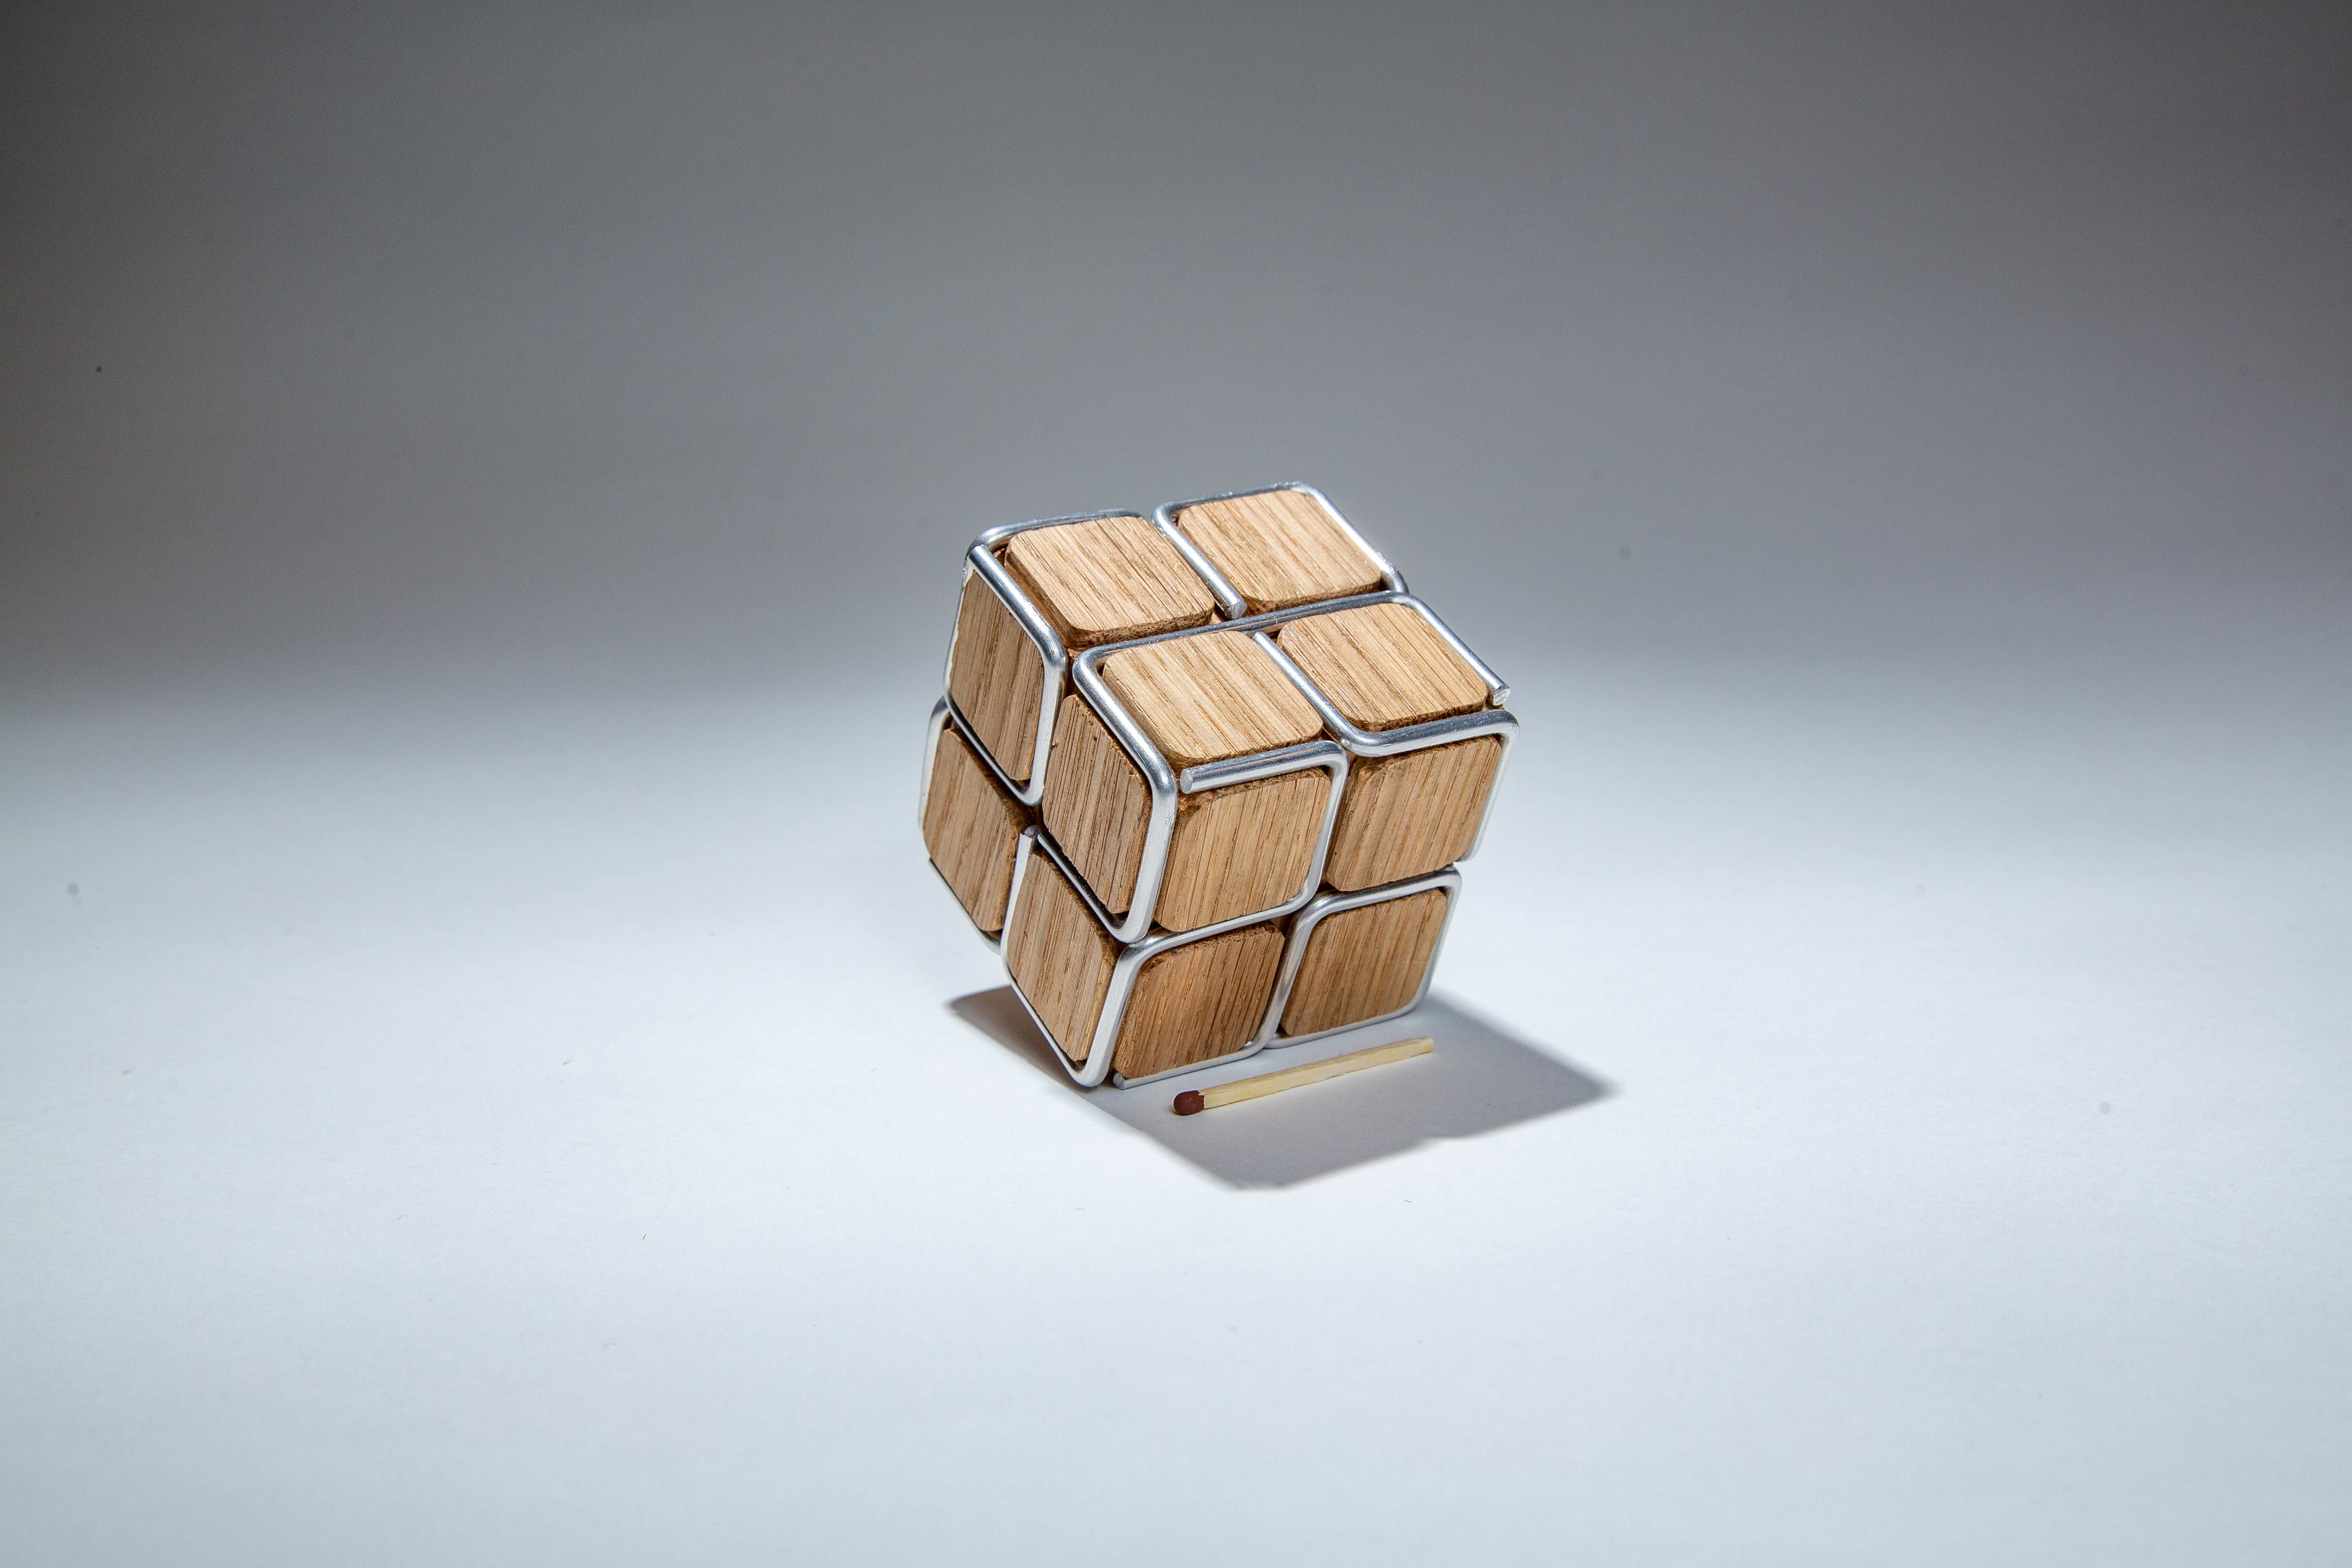 Cube with the frame